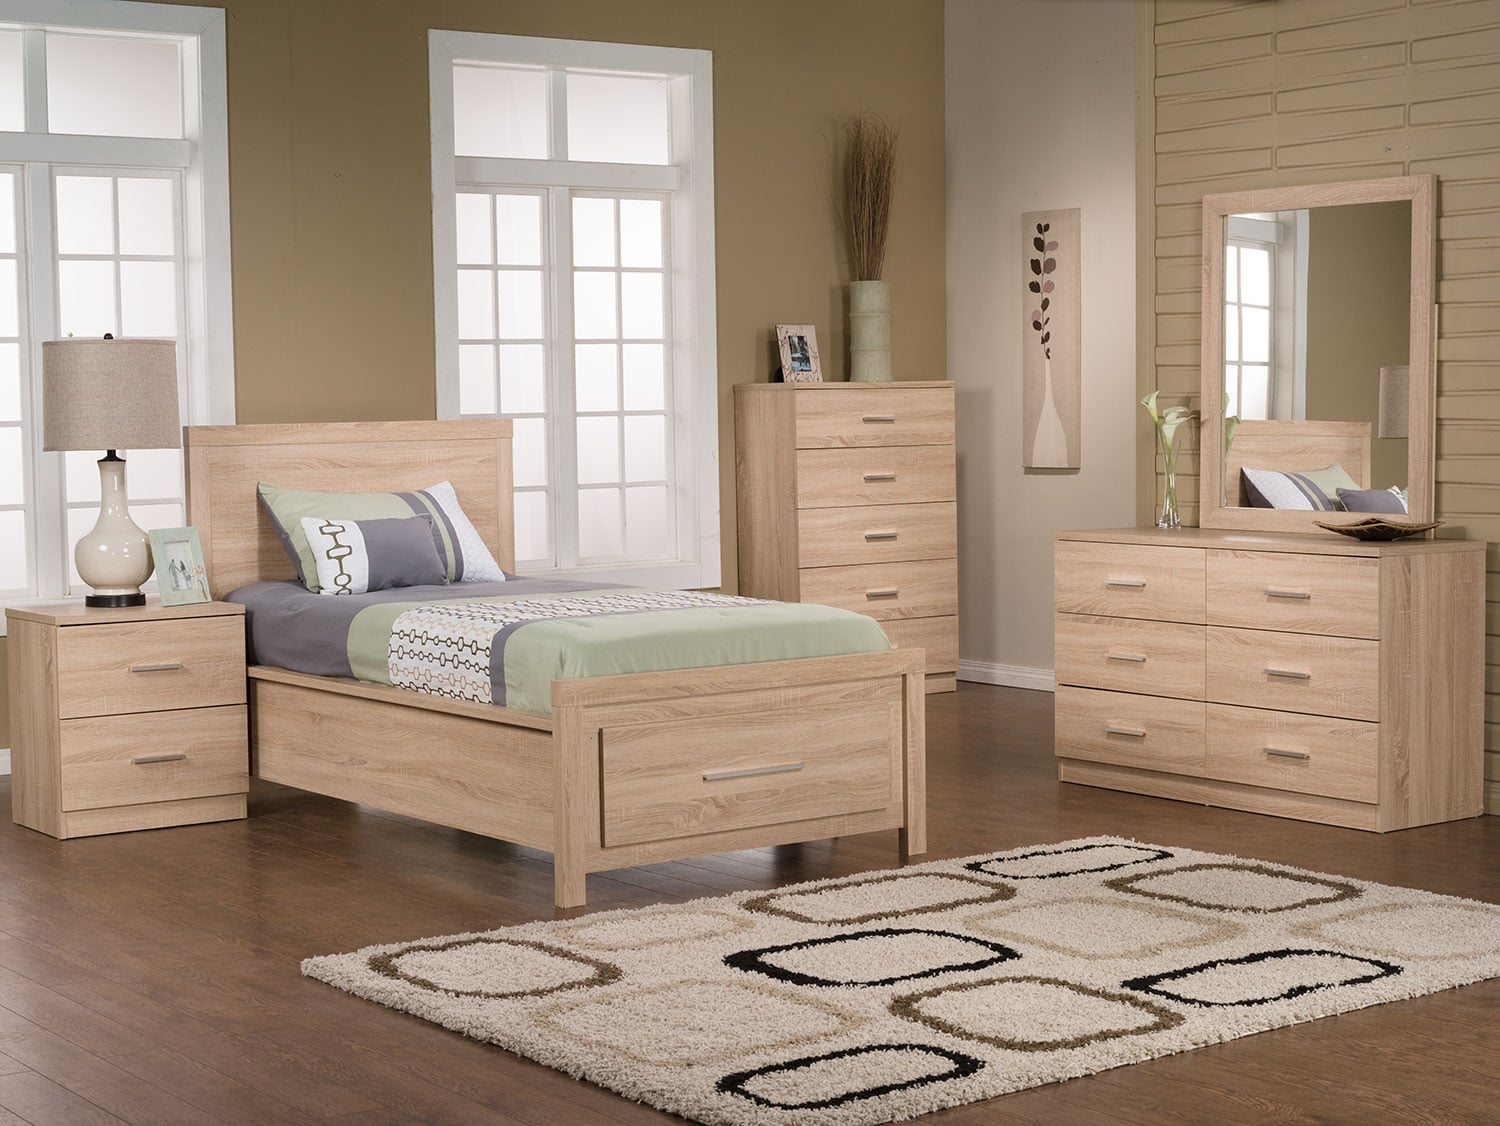 Sierra Twin 6pc bedroom